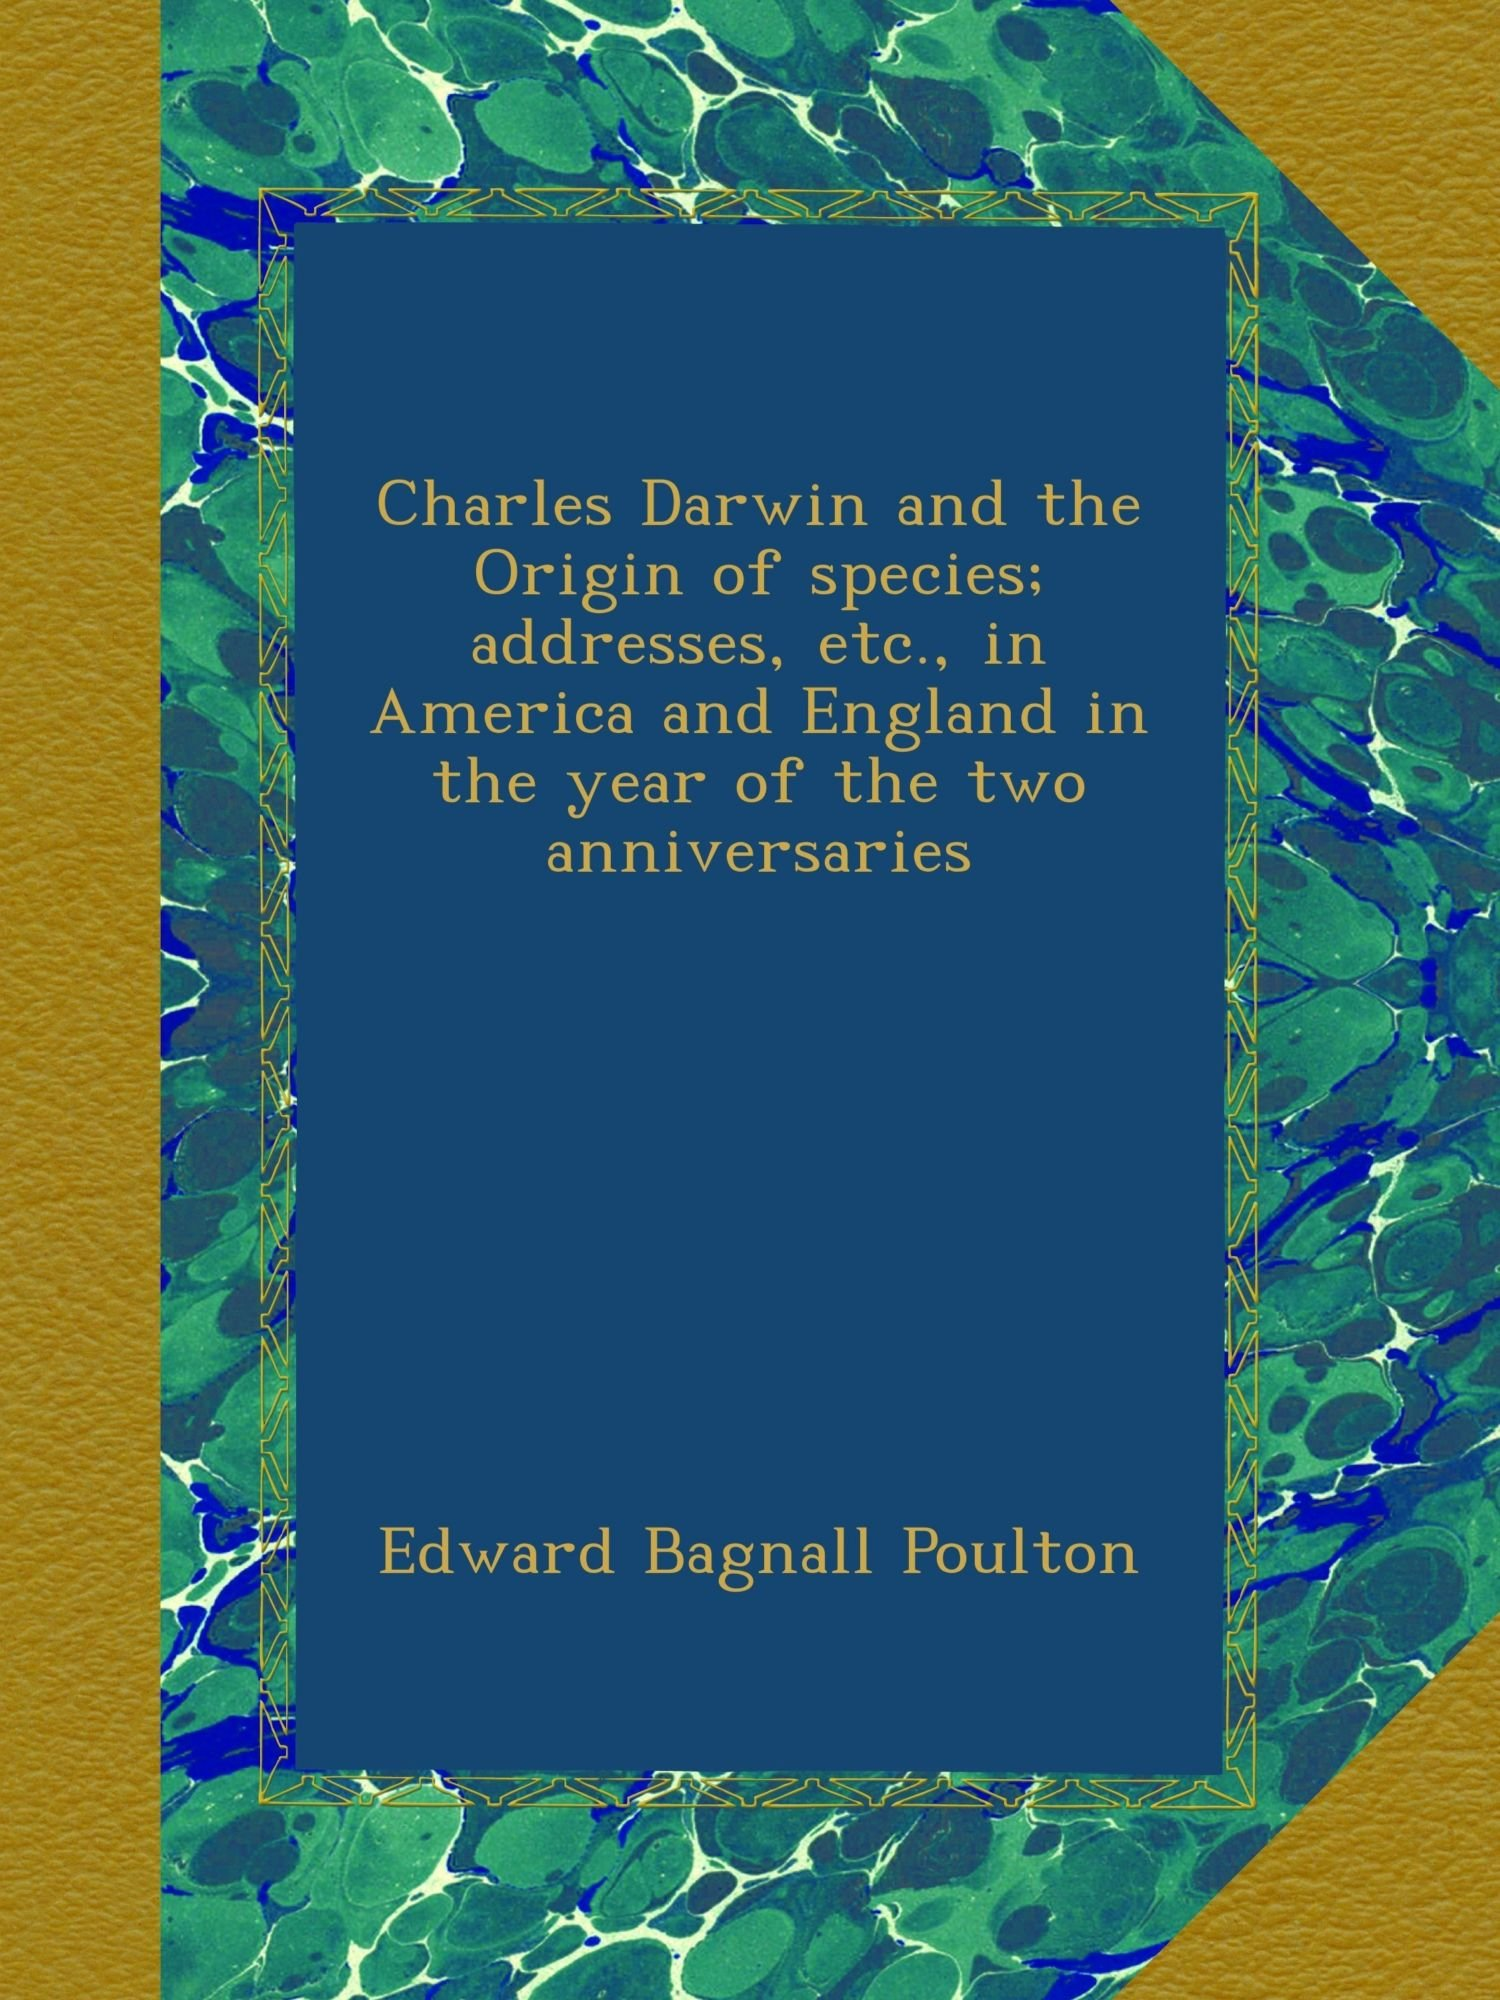 Charles Darwin and the Origin of species; addresses, etc., in America and England in the year of the two anniversaries ebook